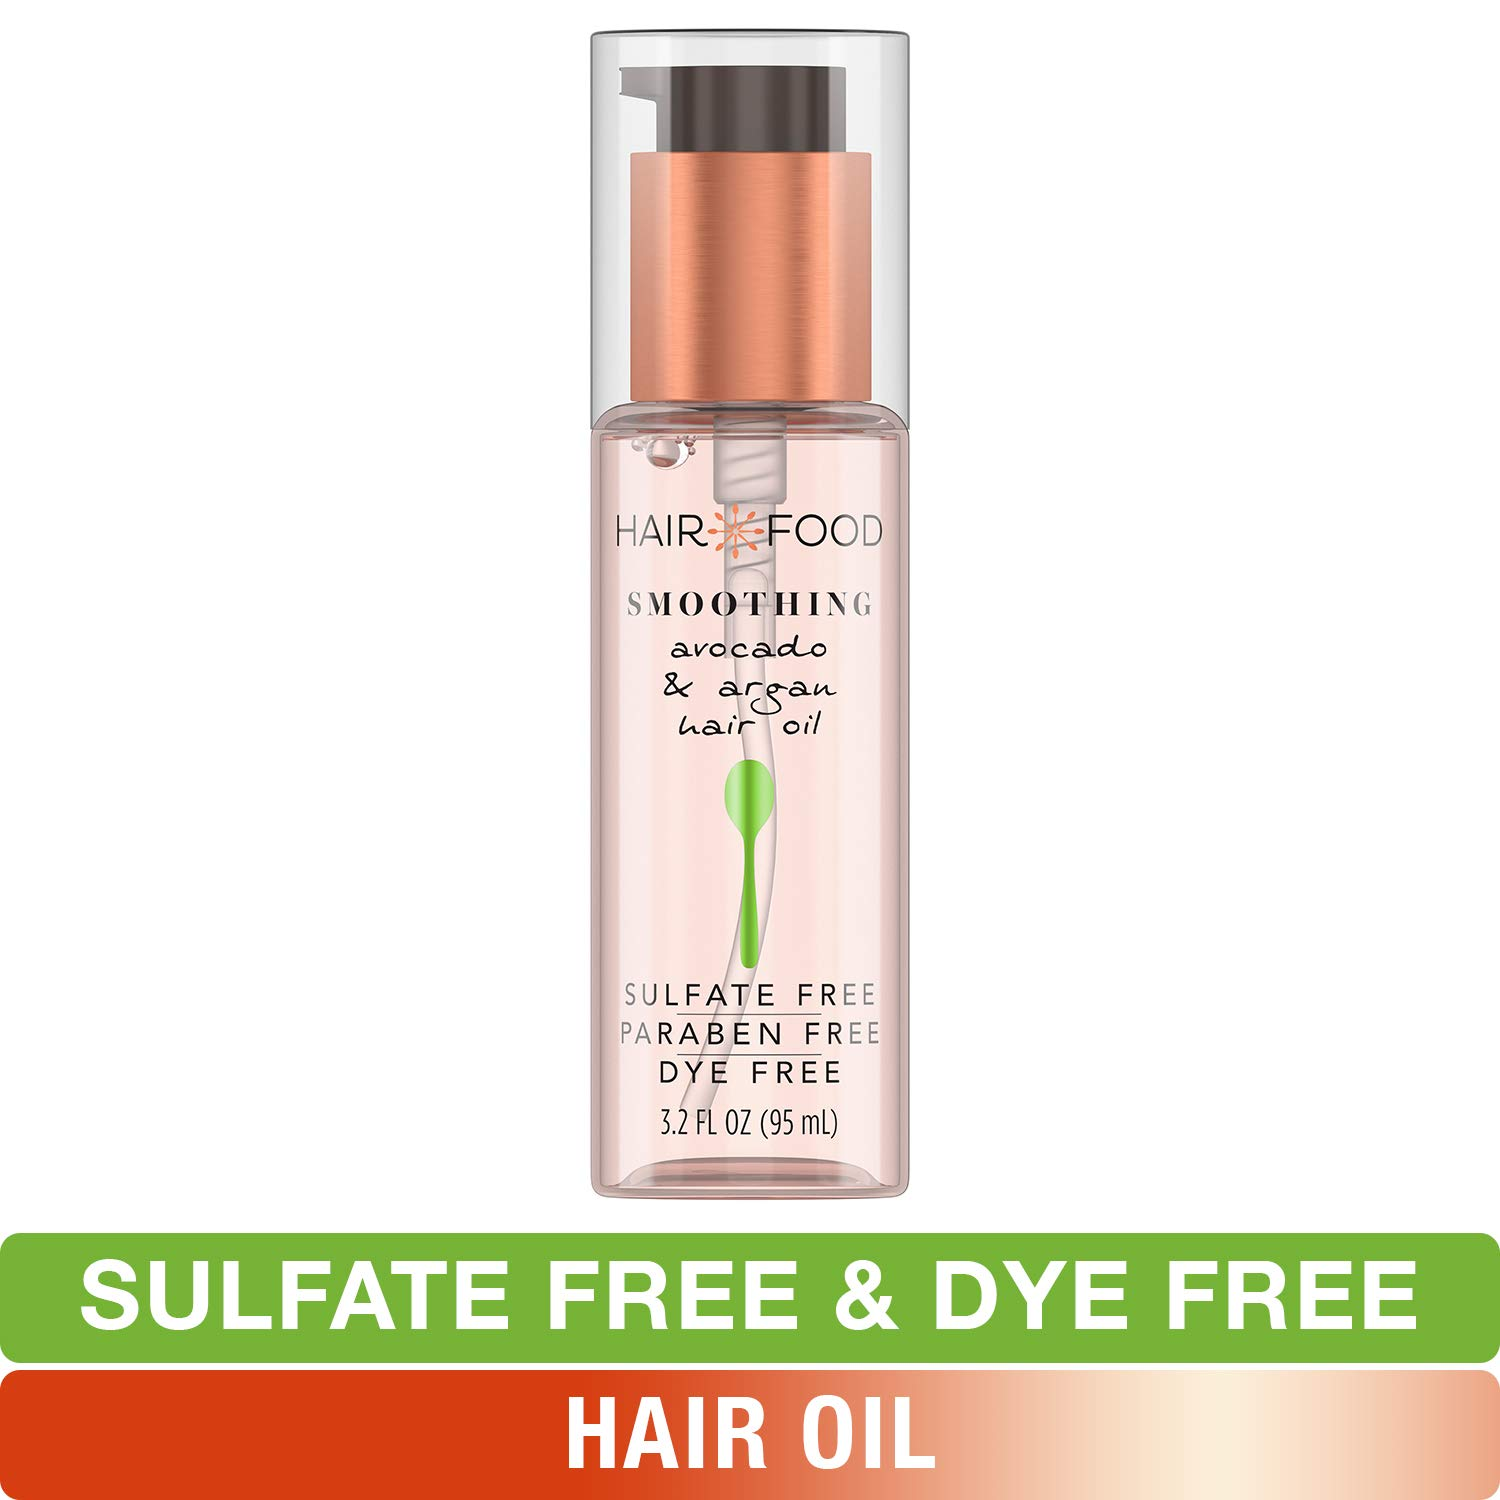 Sulfate Free Hair Oil, Dye Free Smoothing Treatment, Argan Oil and Avocado, Hair Food, 3.2 FL OZ